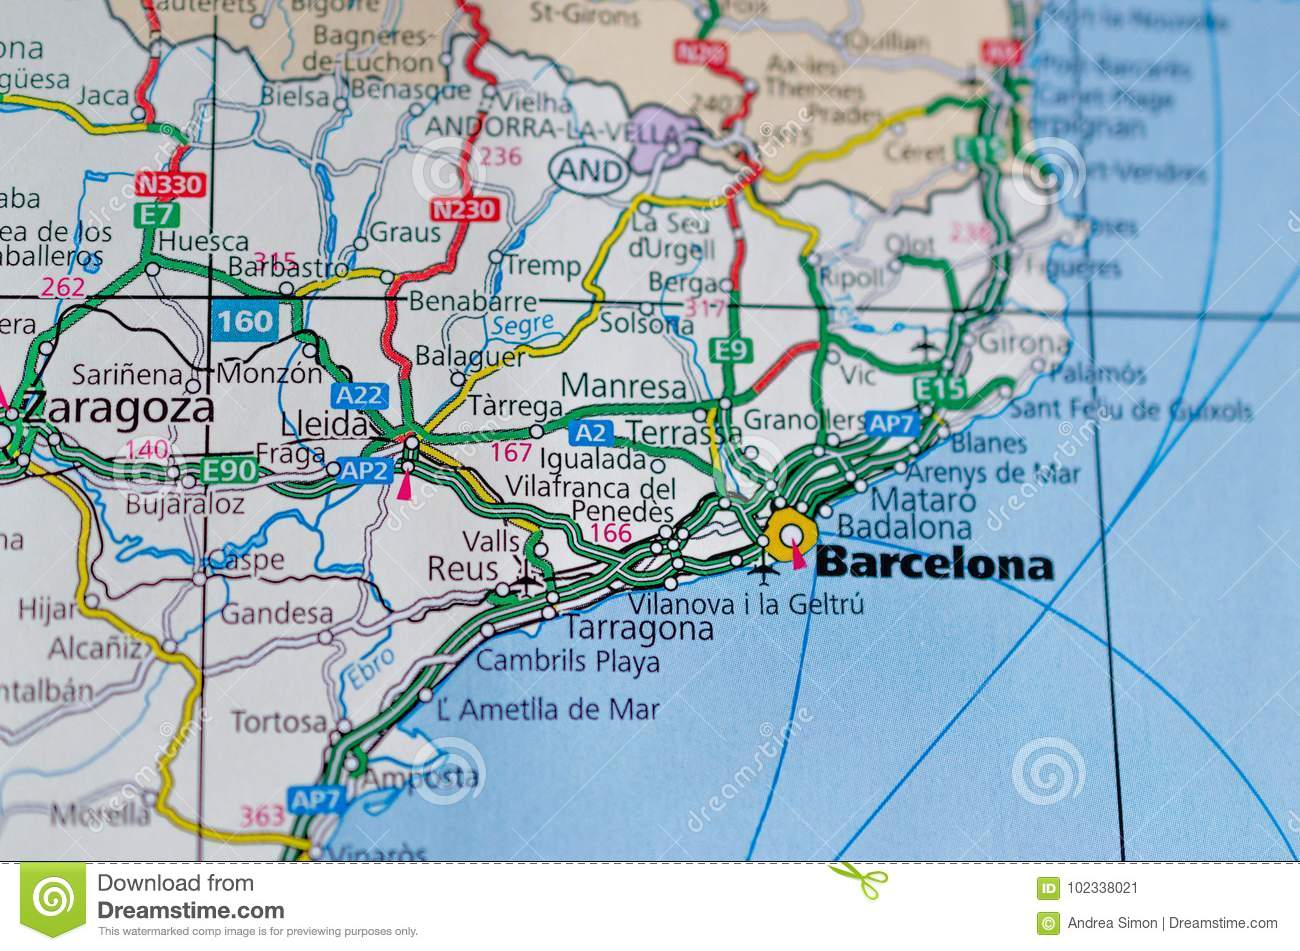 1 441 barcelona map photos free royalty free stock photos from dreamstime dreamstime com